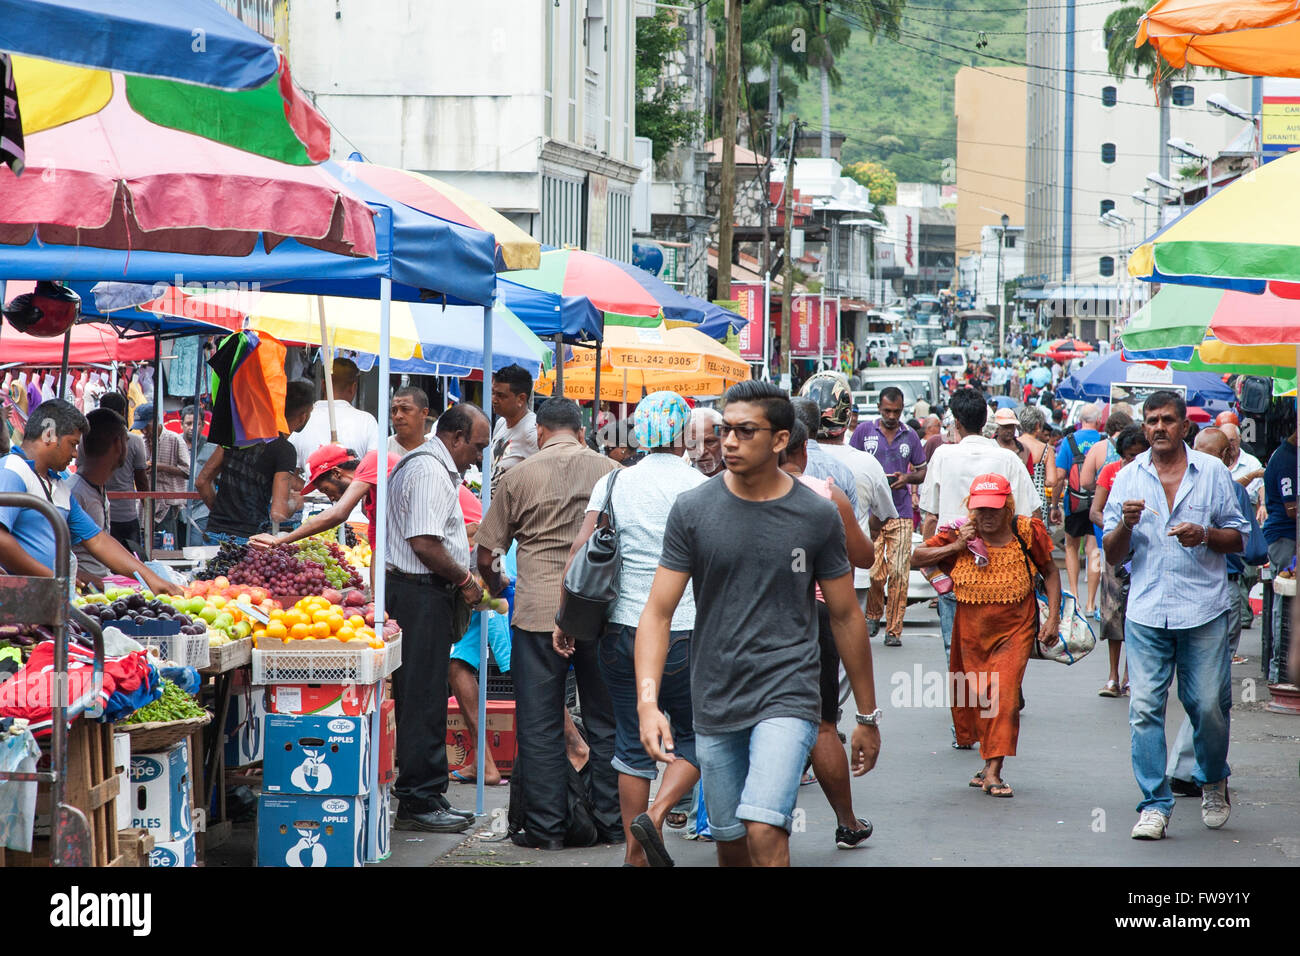 The port louis street market in mauritius stock photo 101637031 alamy - Mauritius market port louis ...